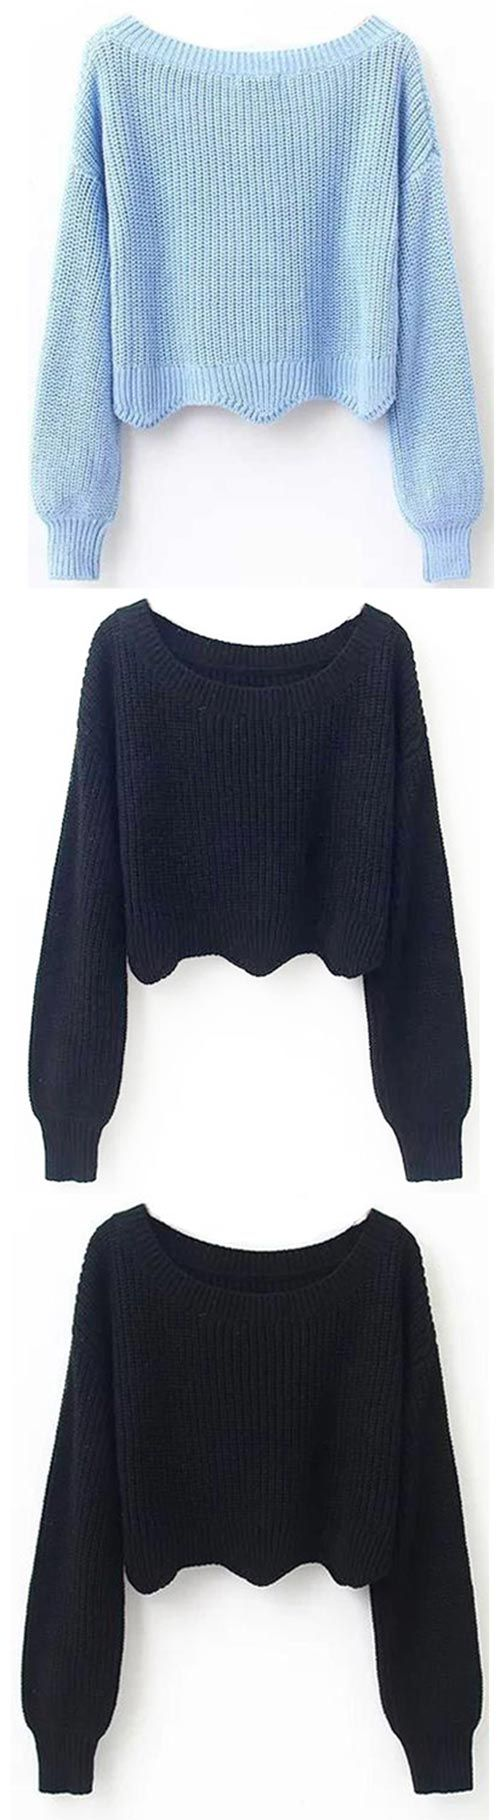 Up to 10% off! Check it, $23.99 Now! You are clearly living right if you manage to snatch up one these wave sweater! People should take lessons from you! Because this sweater is totally fab! Get more choices at Cupshe.com !